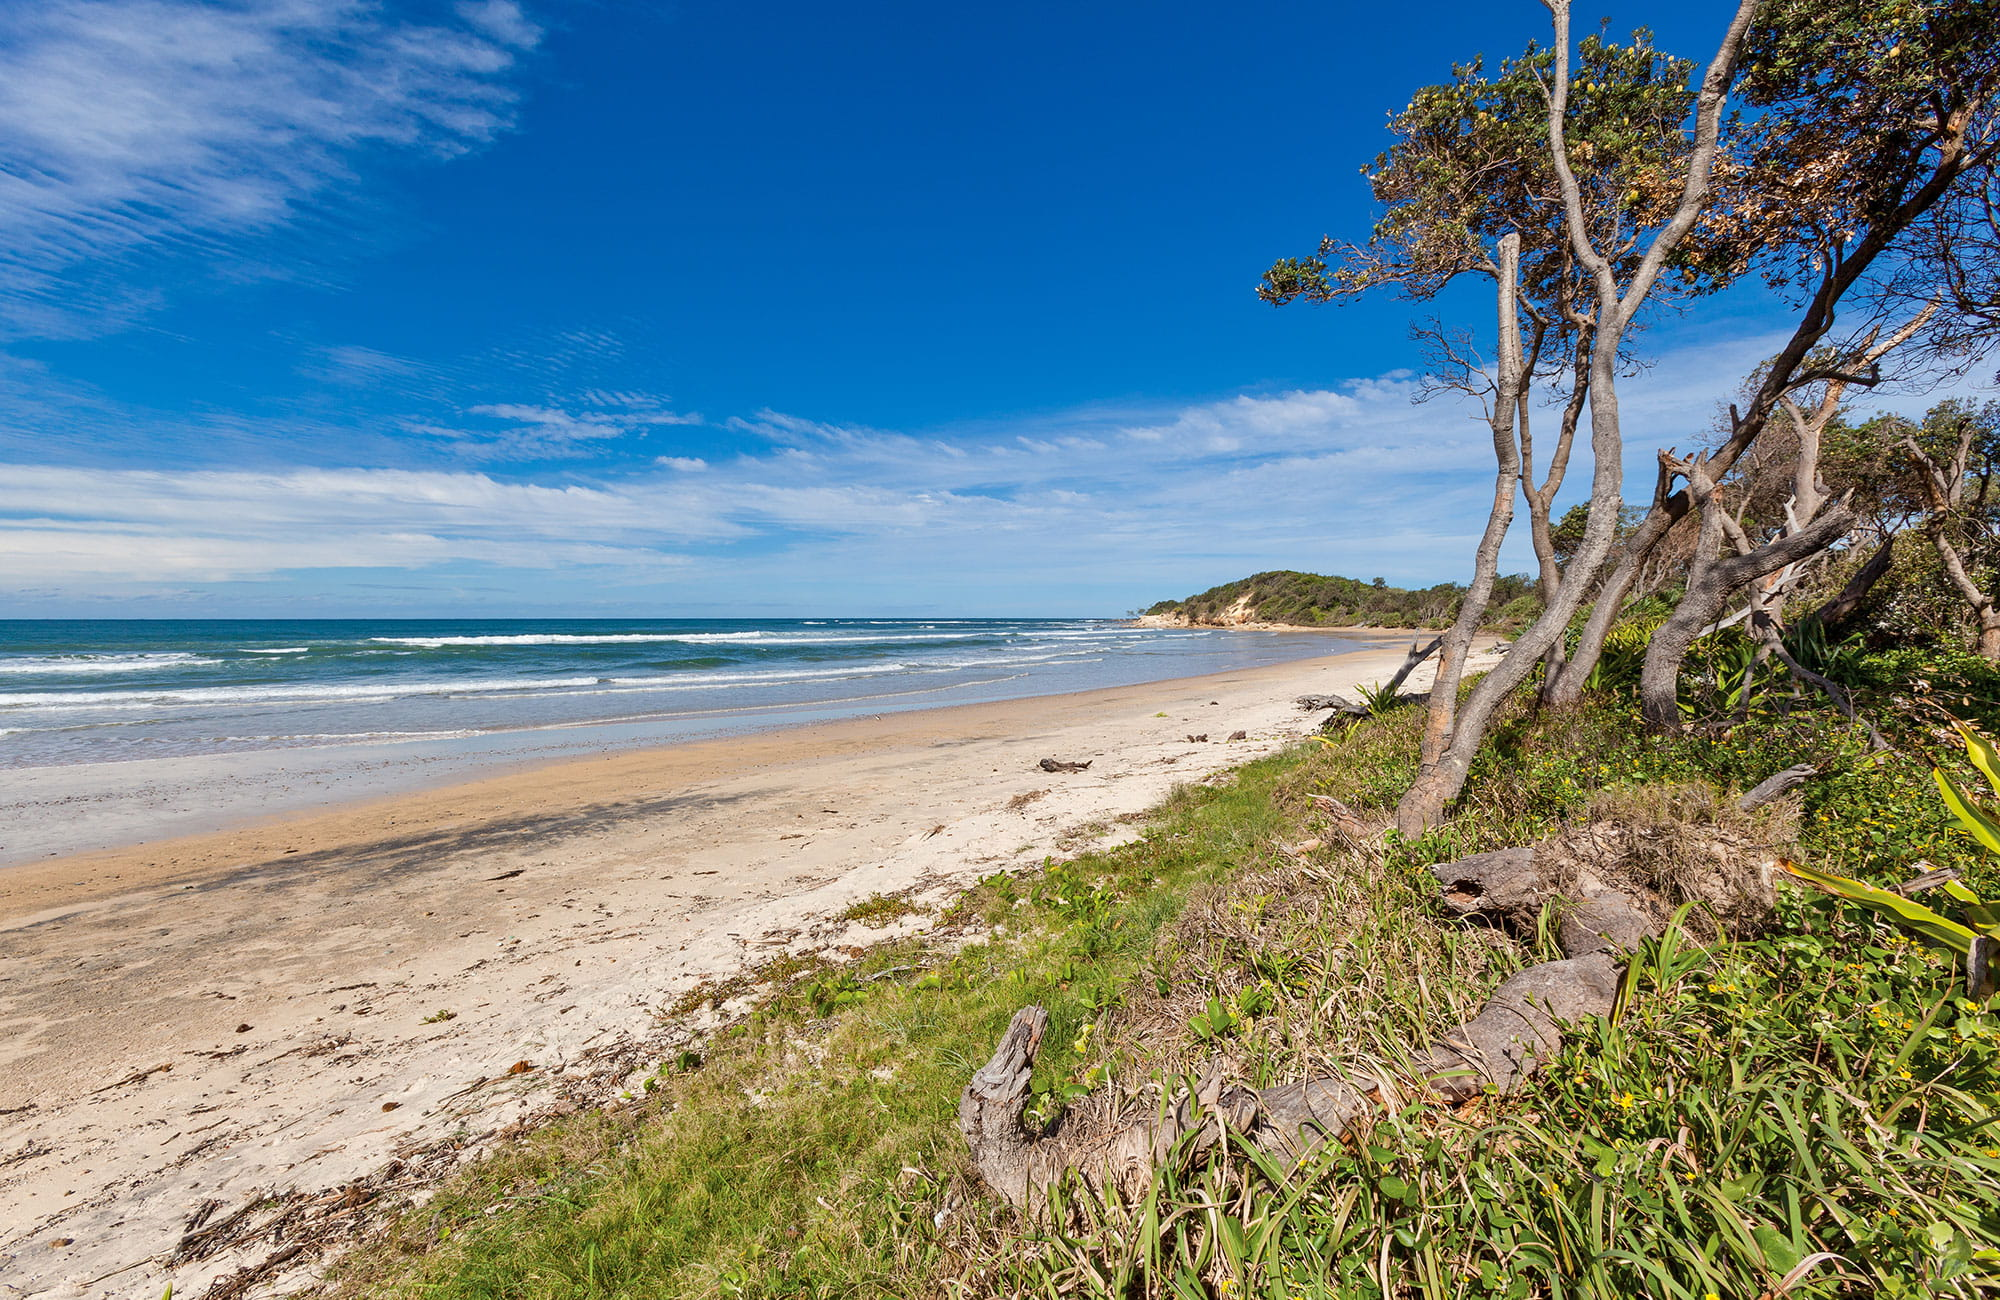 The beach at Illaroo north campground in Yuraygir National Park. Photo: Robert Cleary/DPIE